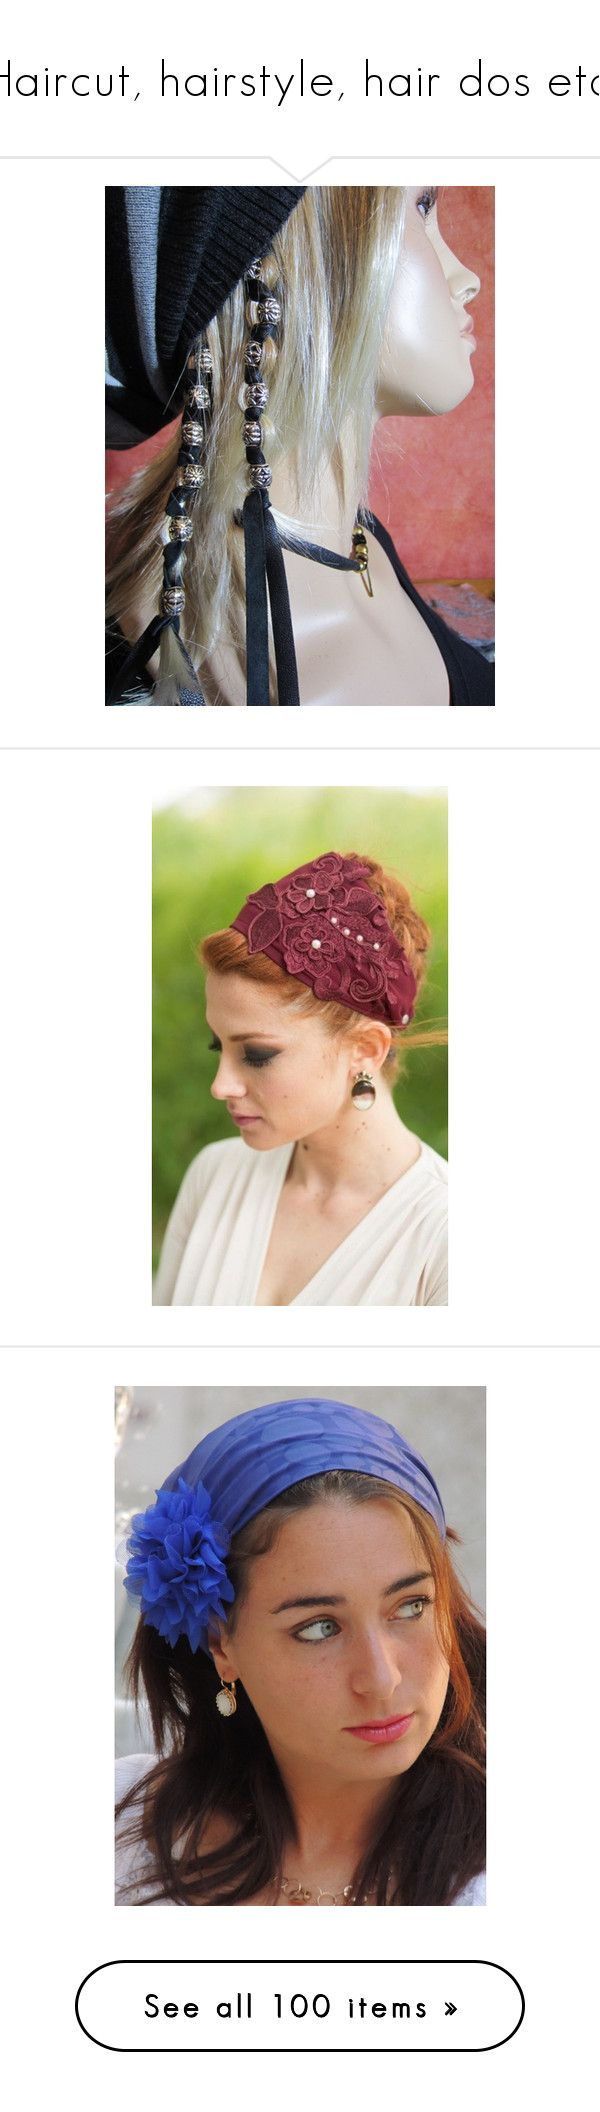 """""""Haircut, hairstyle, hair dos etc."""" by lrdart ❤ liked on Polyvore featuring accessories, hair accessories, black, ties & elastics, hippie headbands, boho headbands, hair extension headband, feather headbands, boho flower headband and maroon"""